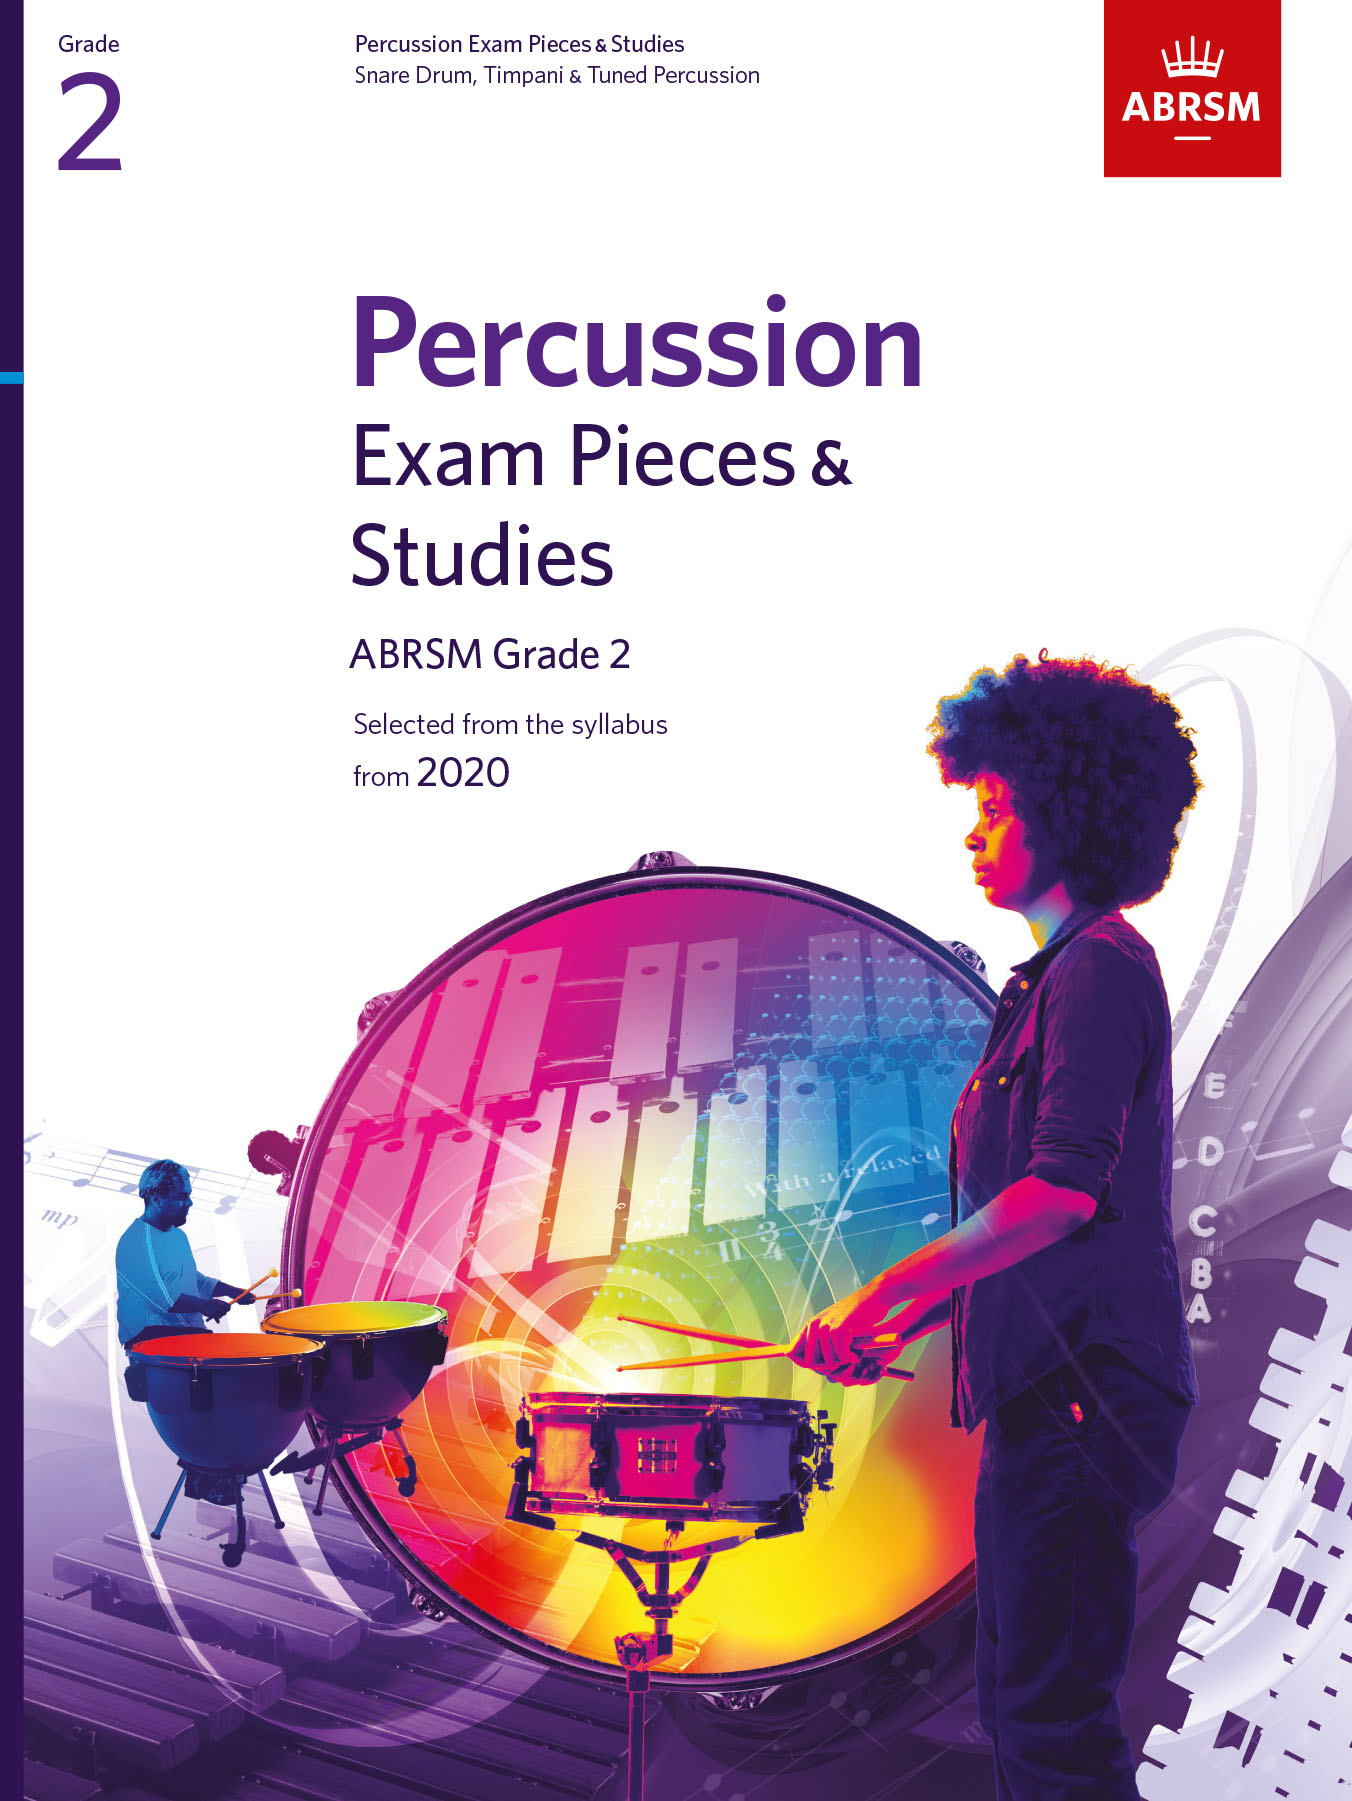 Percussion Exam Pieces & Studies G2 from 2020